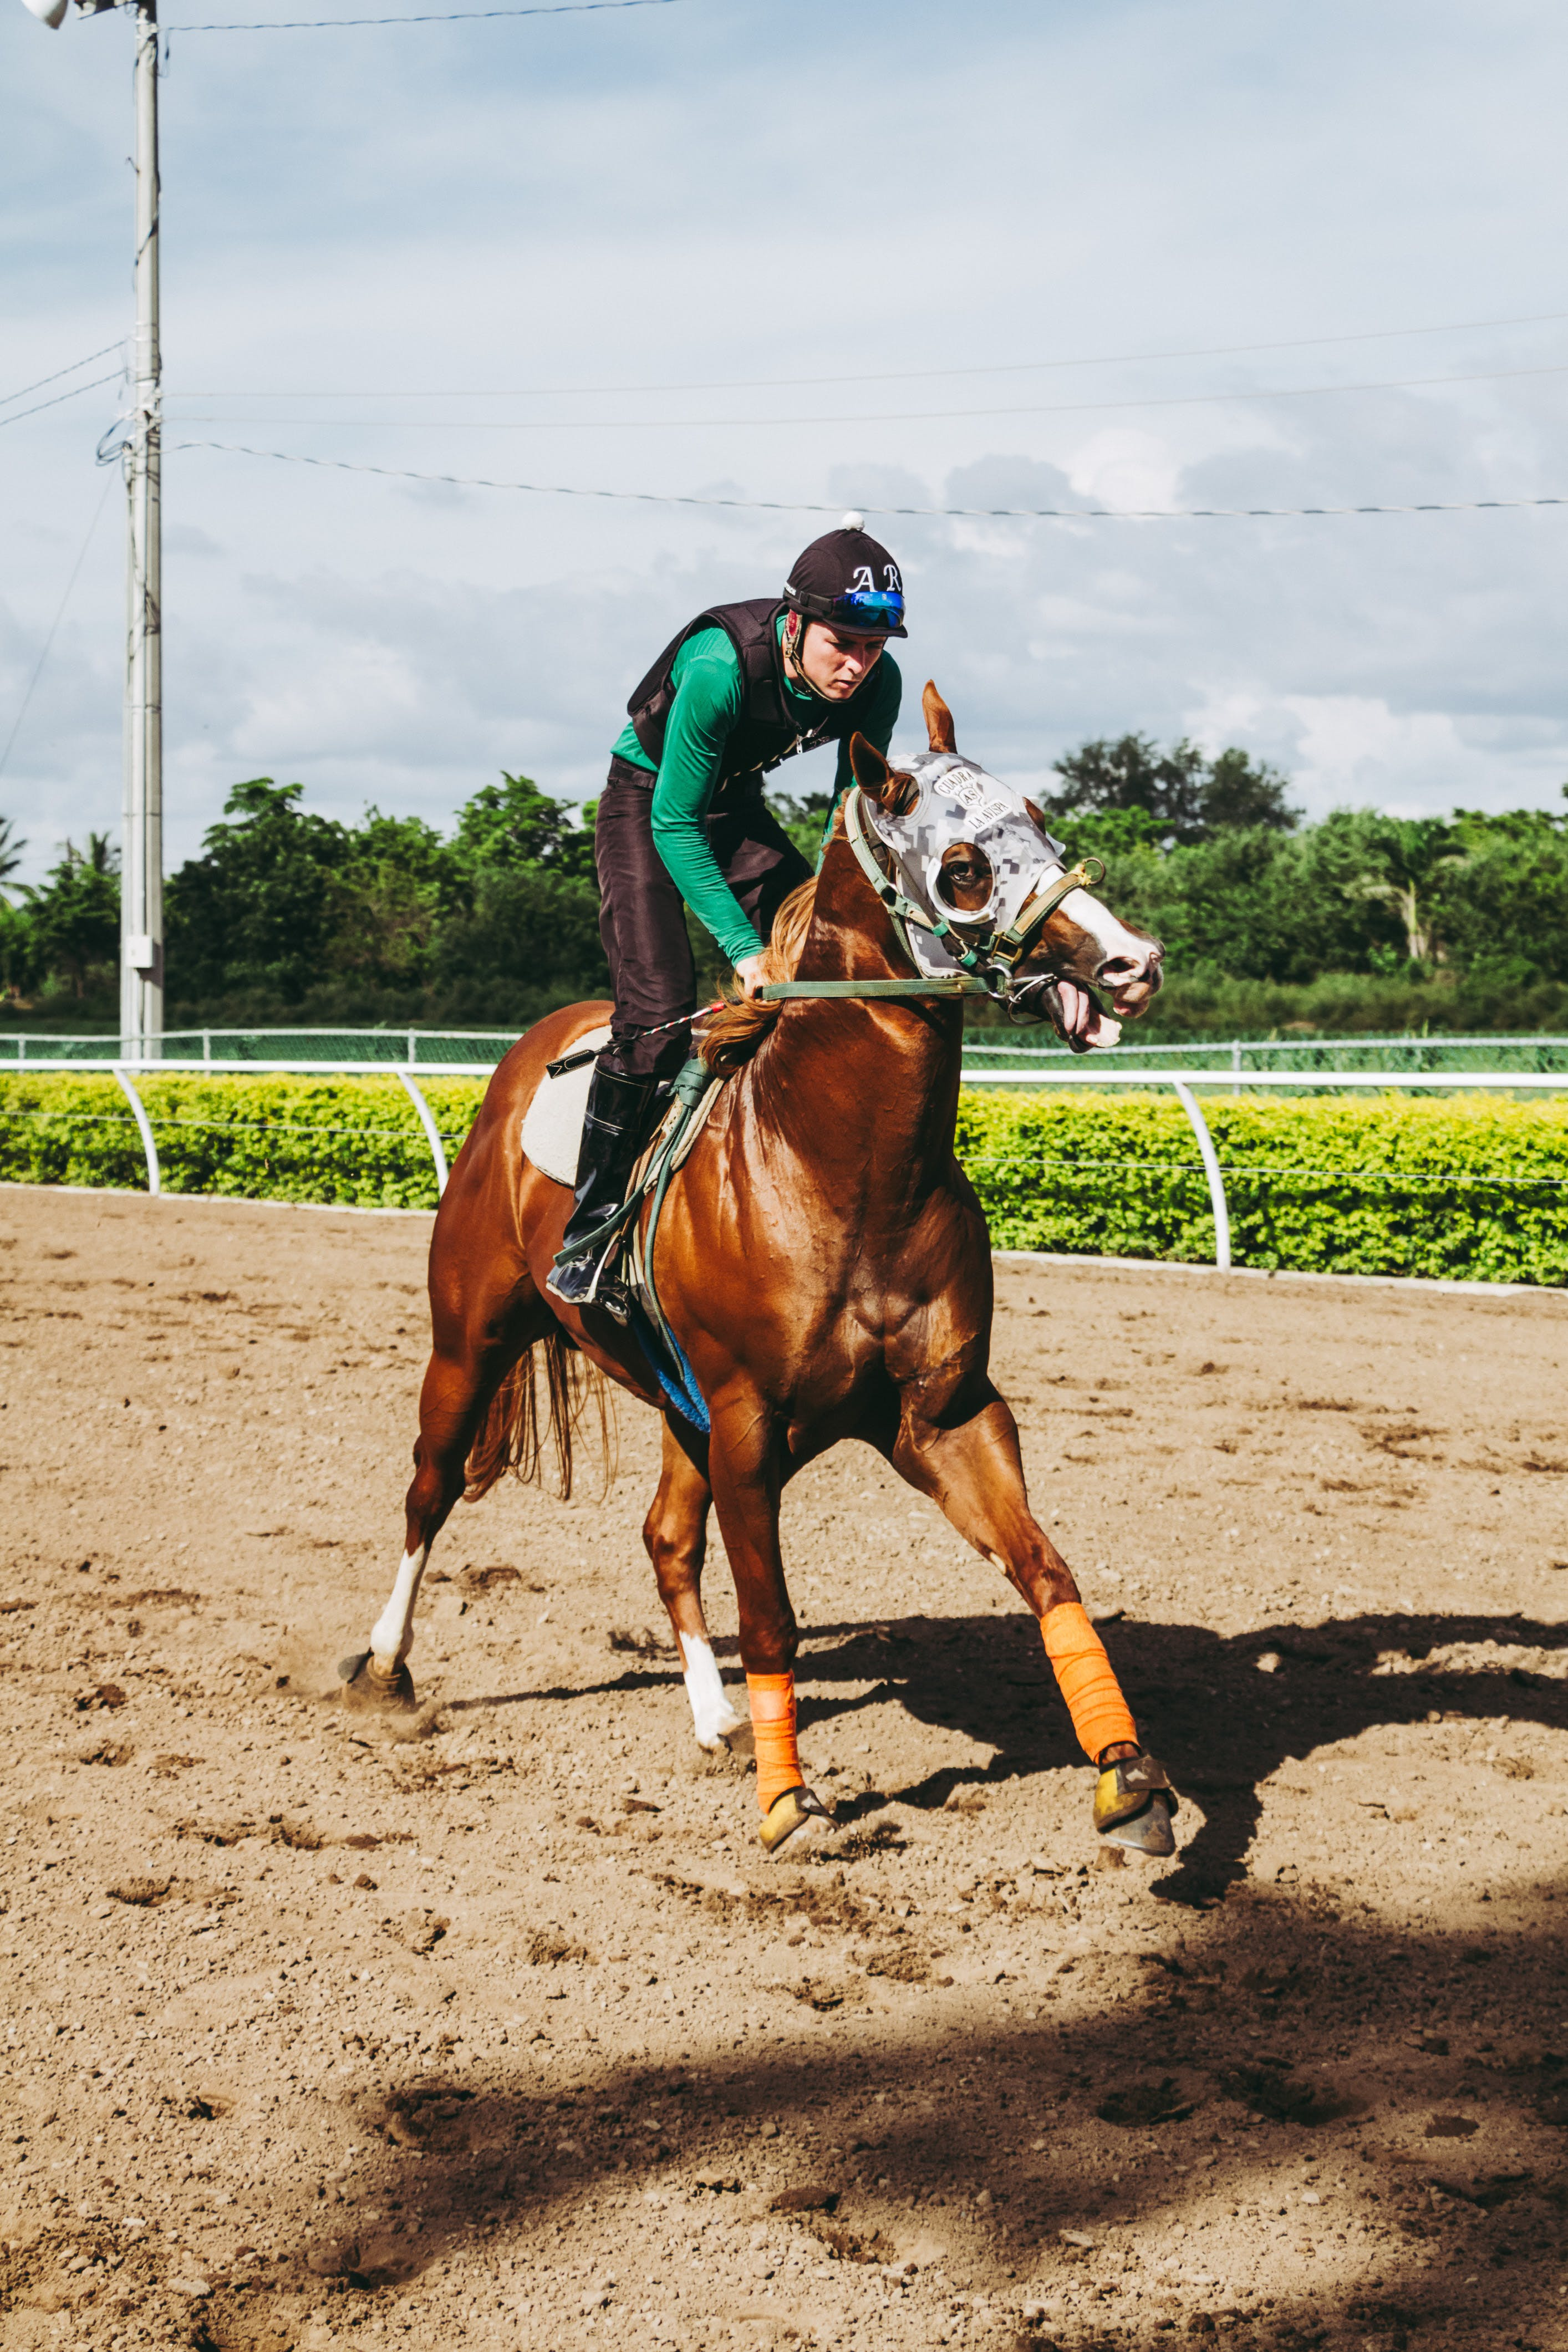 Equestrian Riding Horse on Field